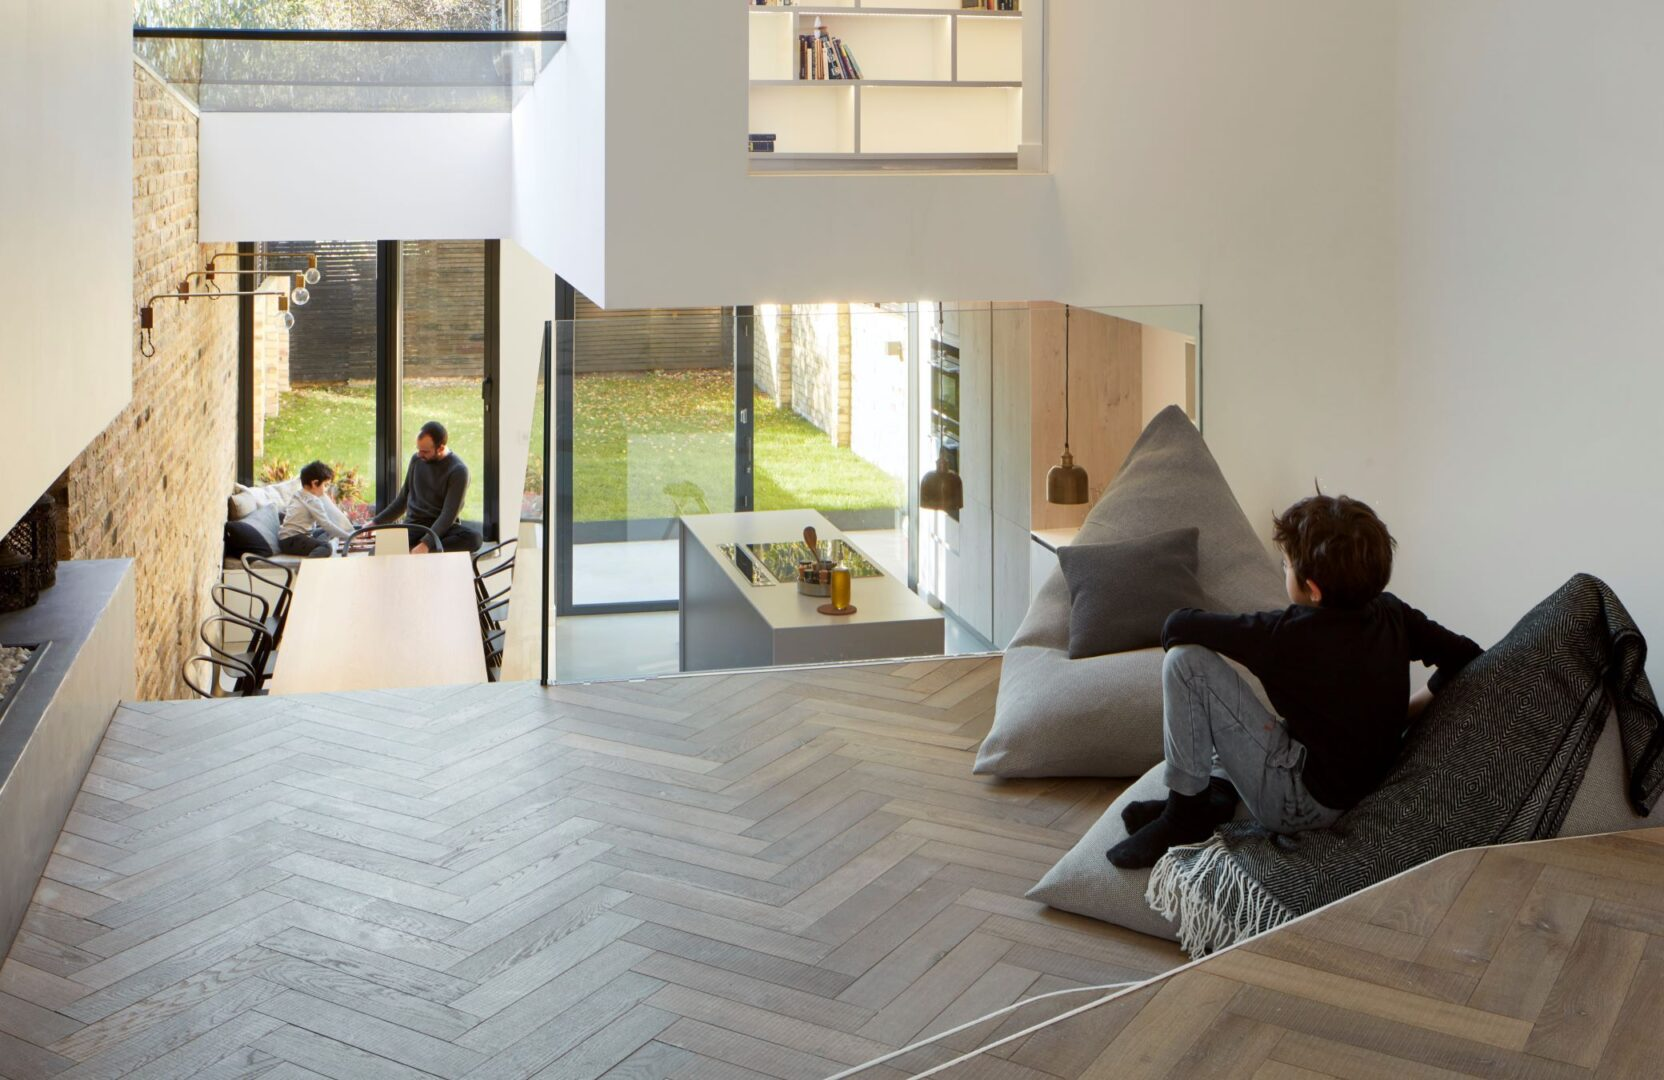 Tate bute herringbone floor with beanbag looking into kitchen by scenario architecture image by M Clayton 3